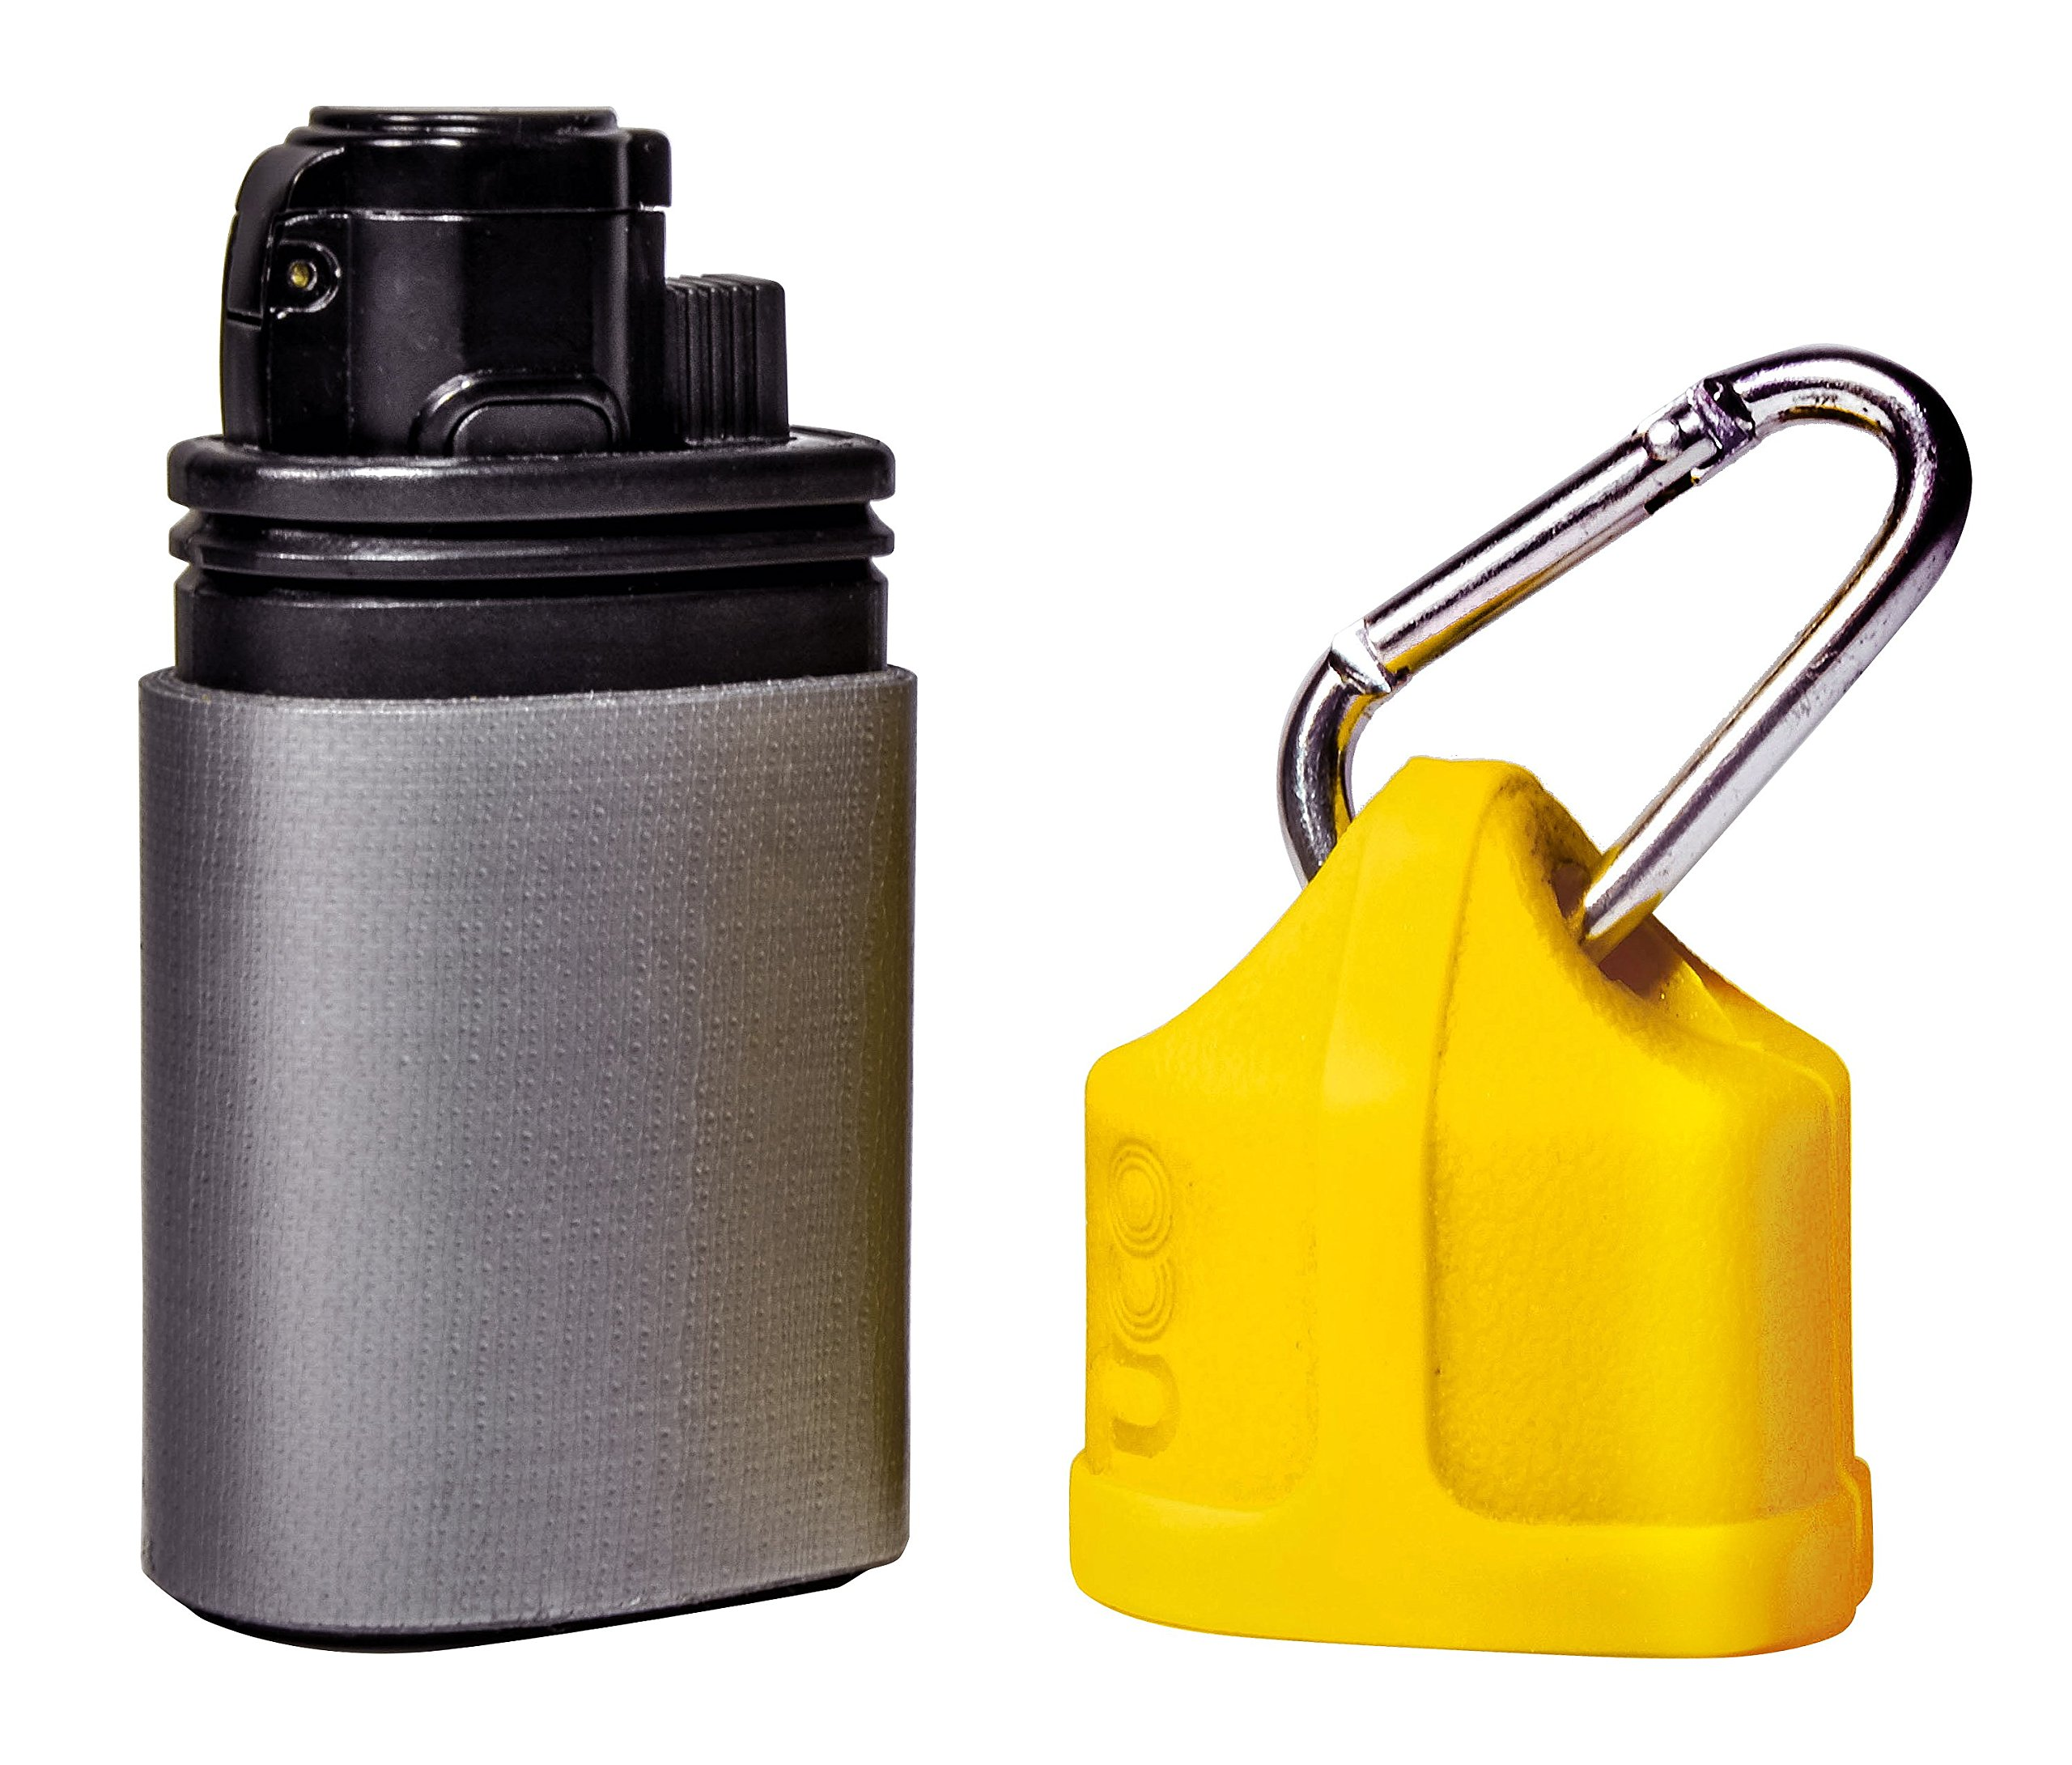 UCO Stormproof Torch Windproof Lighter with Emegency Utility Tape